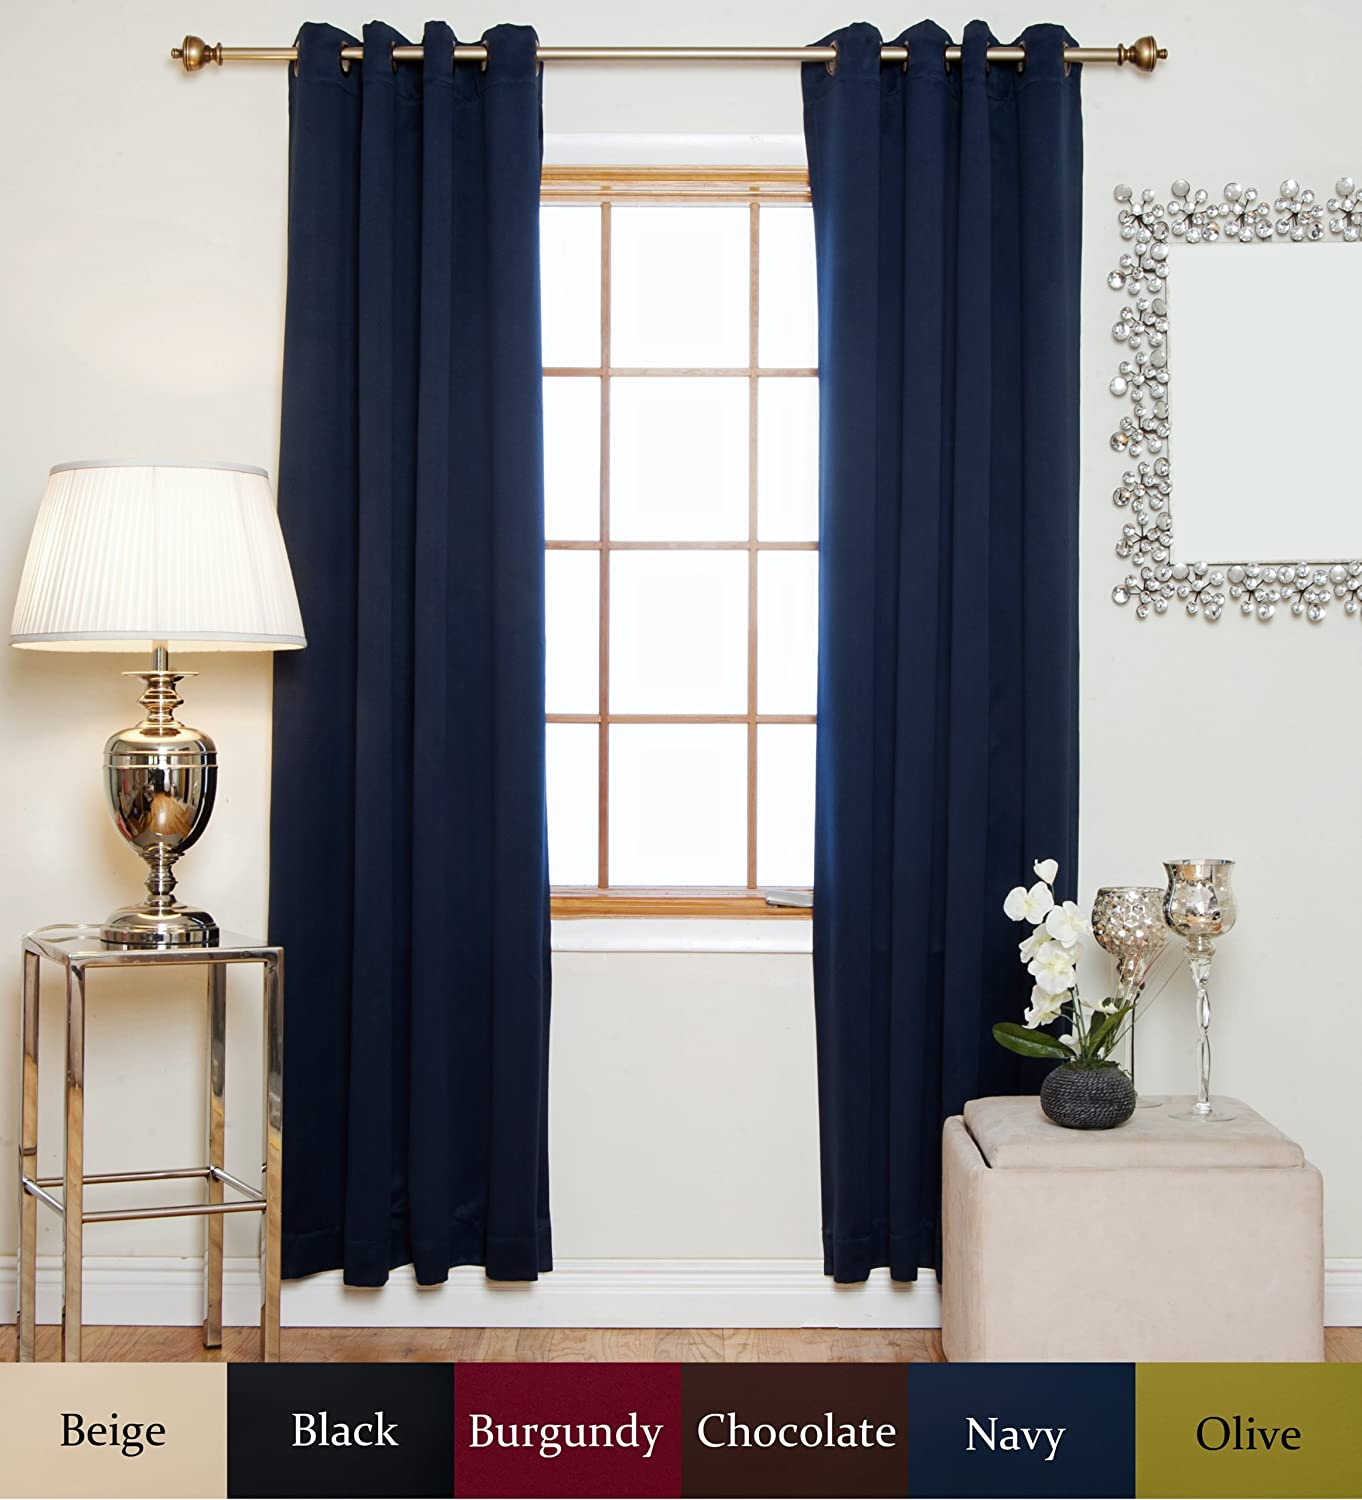 curtain boch mallard semi green furnishings l dark opaque fabrics x blackout drapes w in p exclusive panel curtains